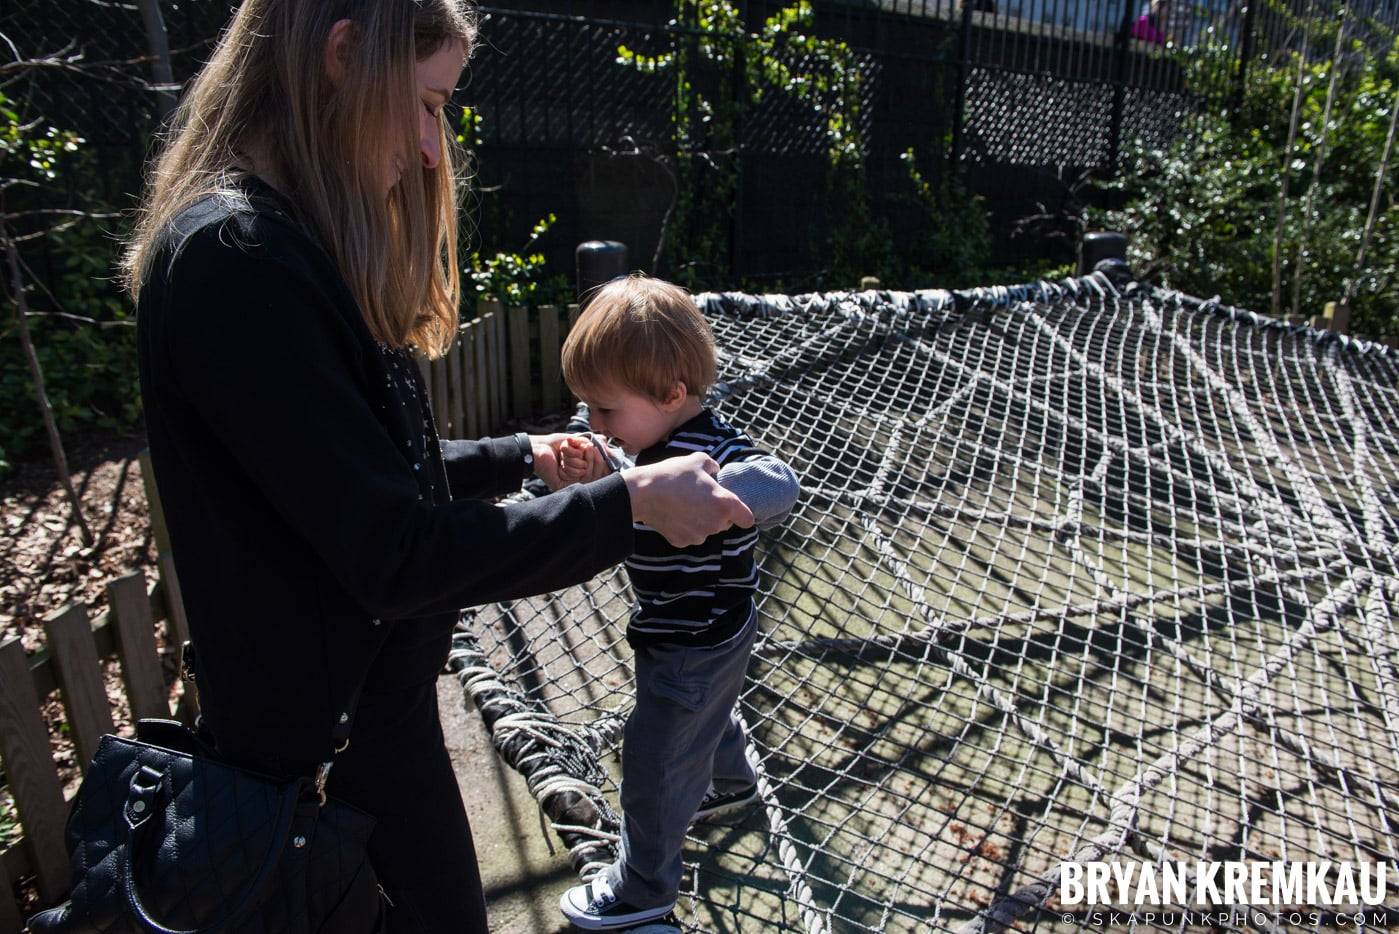 Central Park Zoo @ Central Park, NYC - 4.9.17 (27)